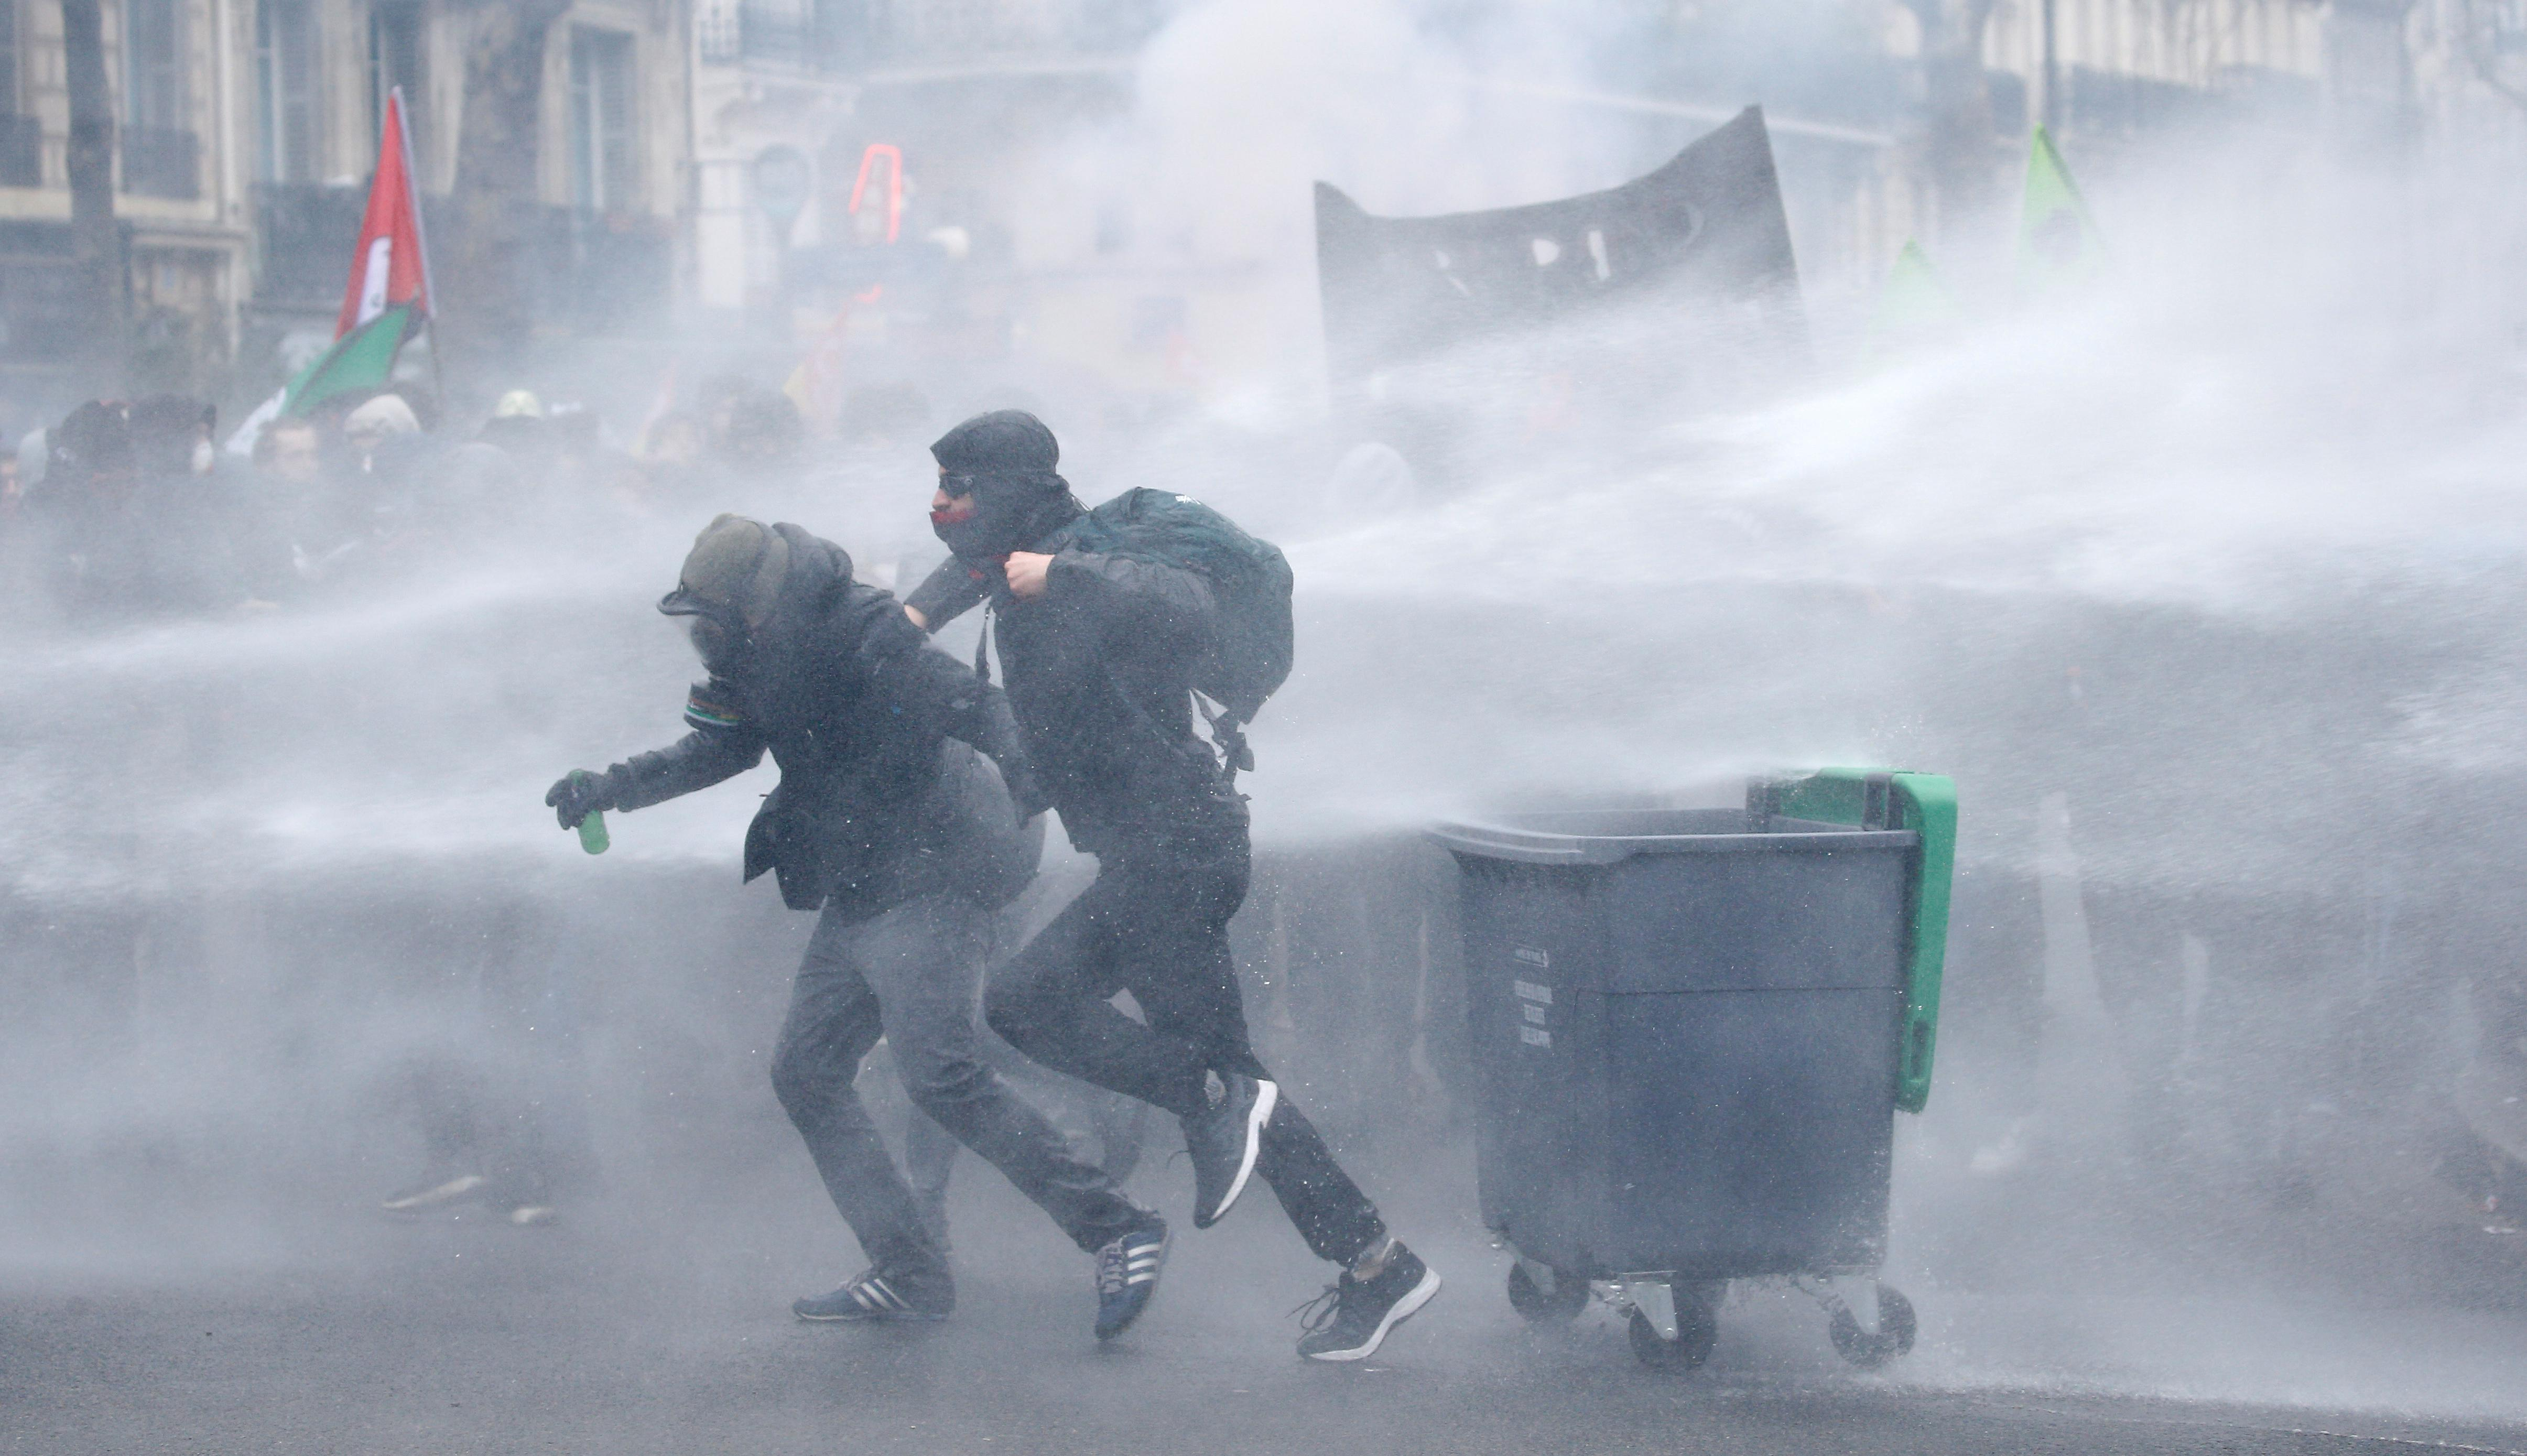 French riot police use water cannons during clashes with masked protesters attending a demonstration during a national day of strike against reforms in Paris, France, March 22, 2018.  Stephane Mahe